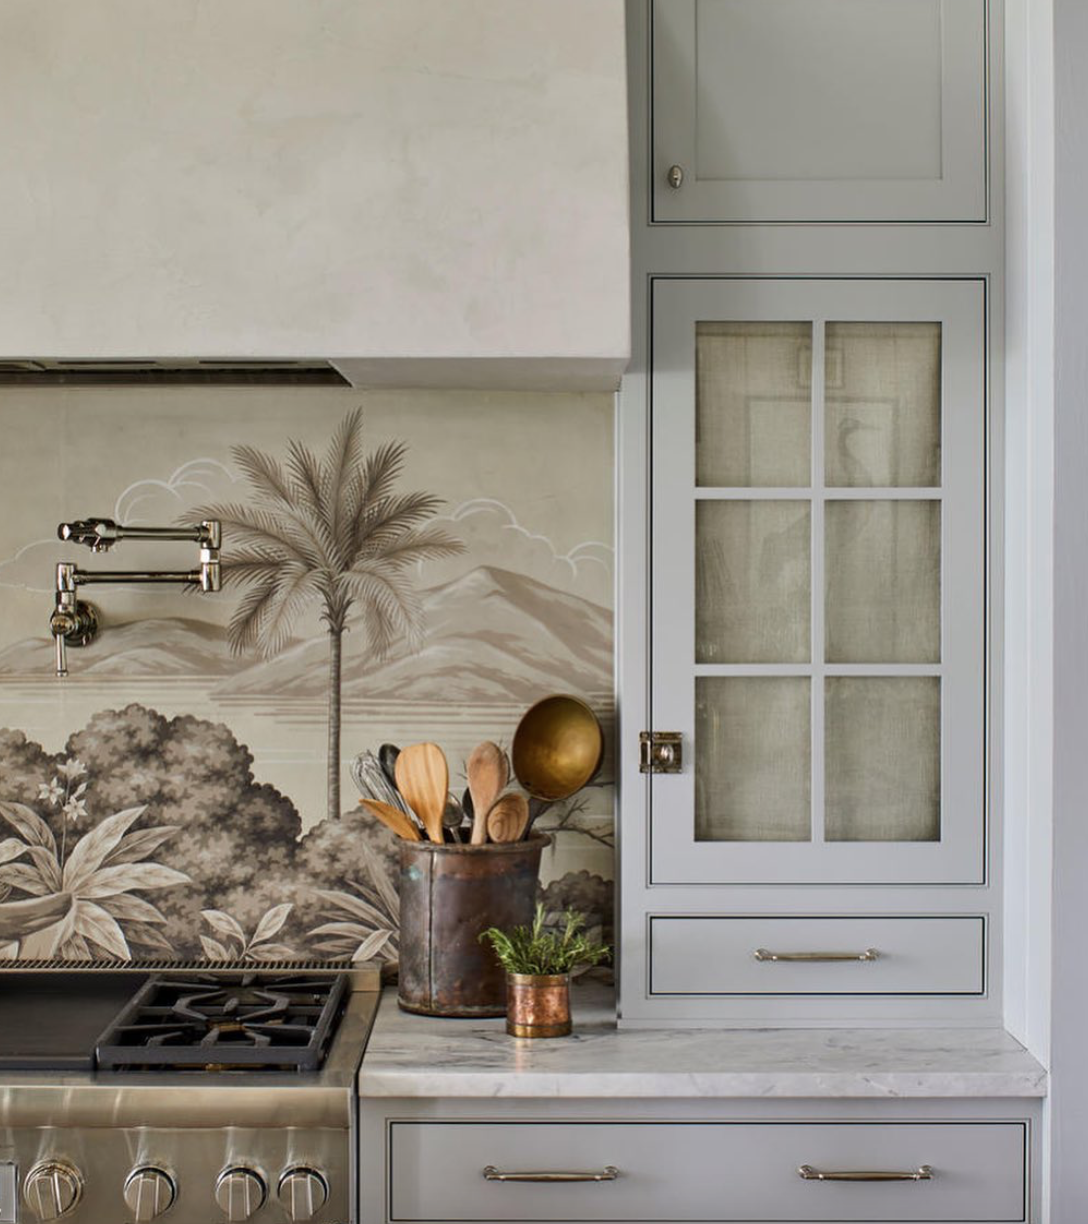 A few gorgeous details from @heatherchadduck's kitchen design for the @southernlivingmag 2019 Idea House.